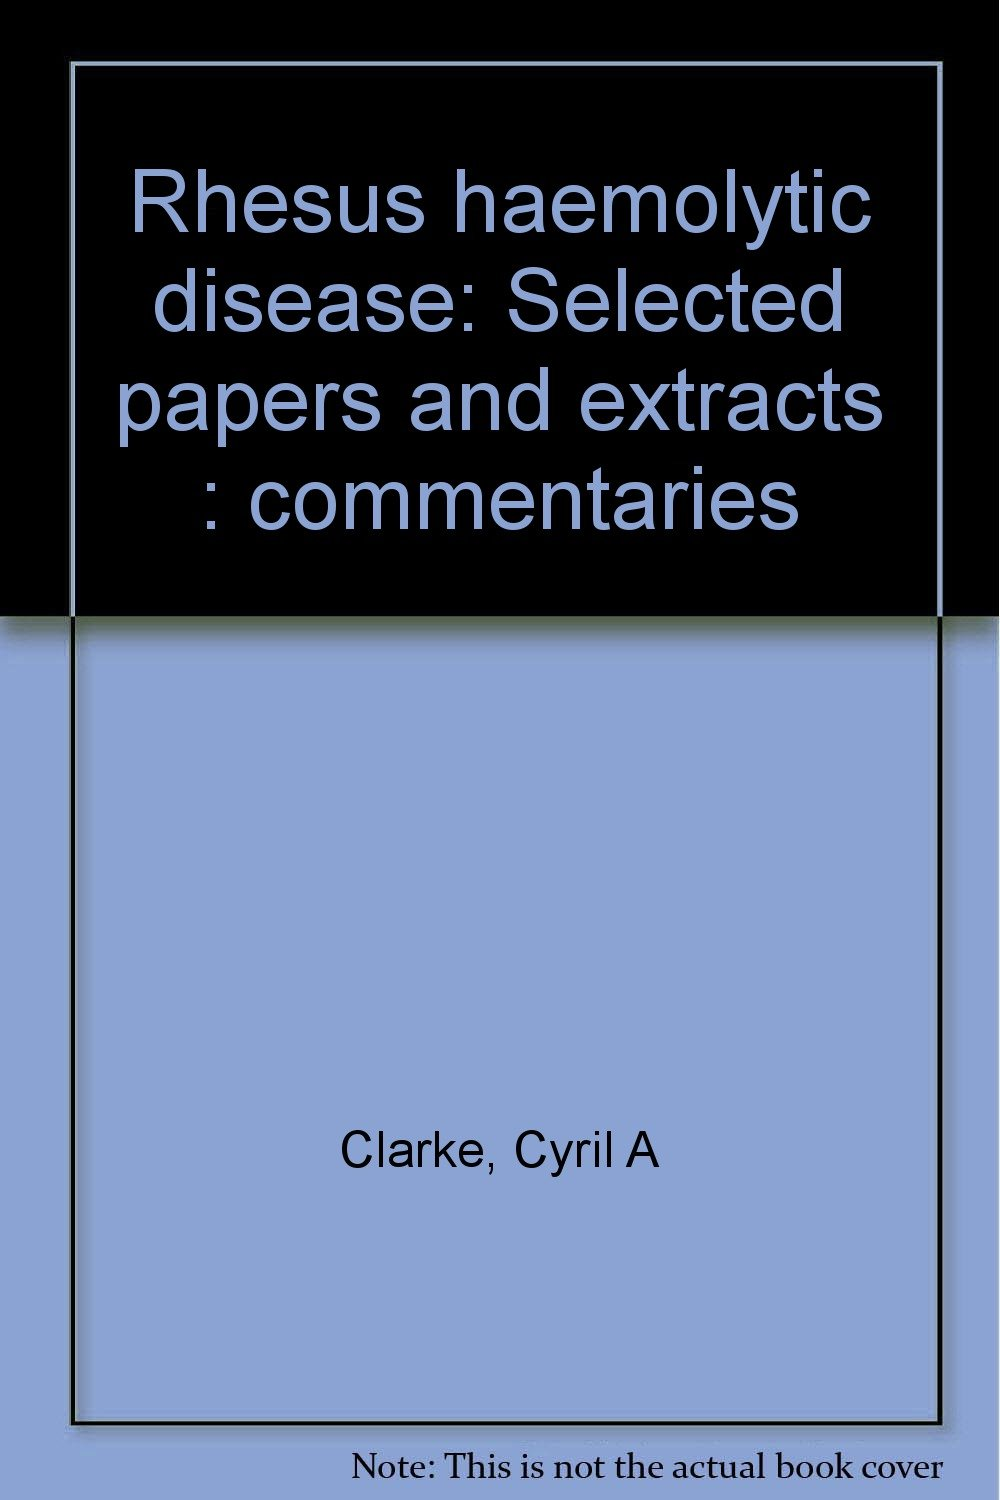 Online Rhesus Haemolytic Disease: Selected Papers And Extracts